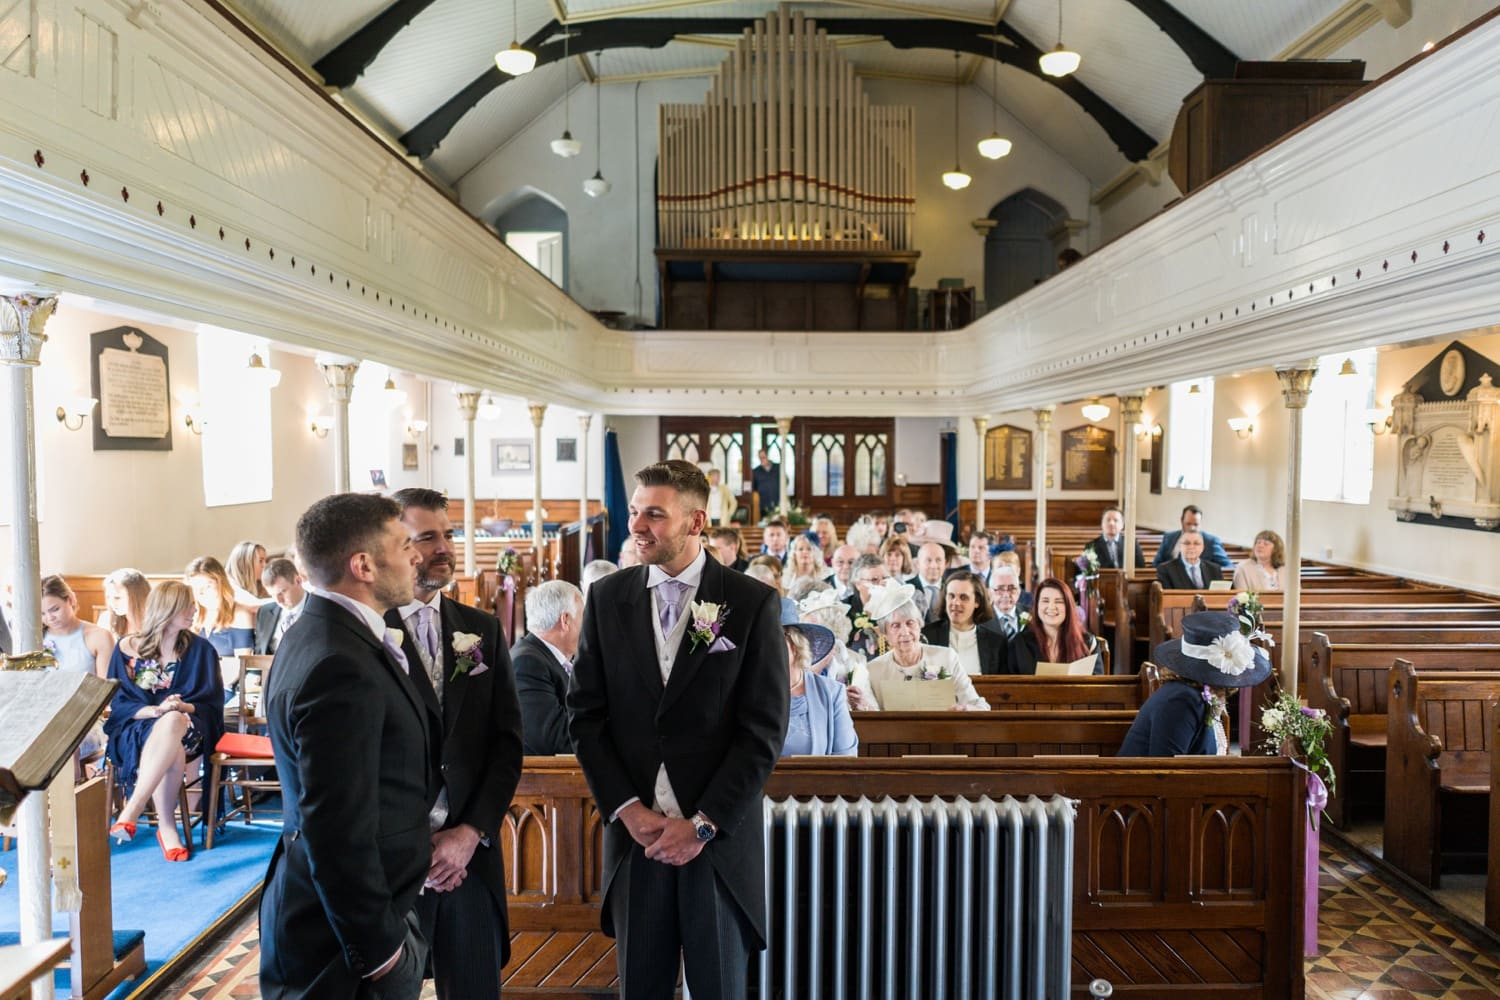 Wedding at St Peter's Church in Blaenavon, South Wales